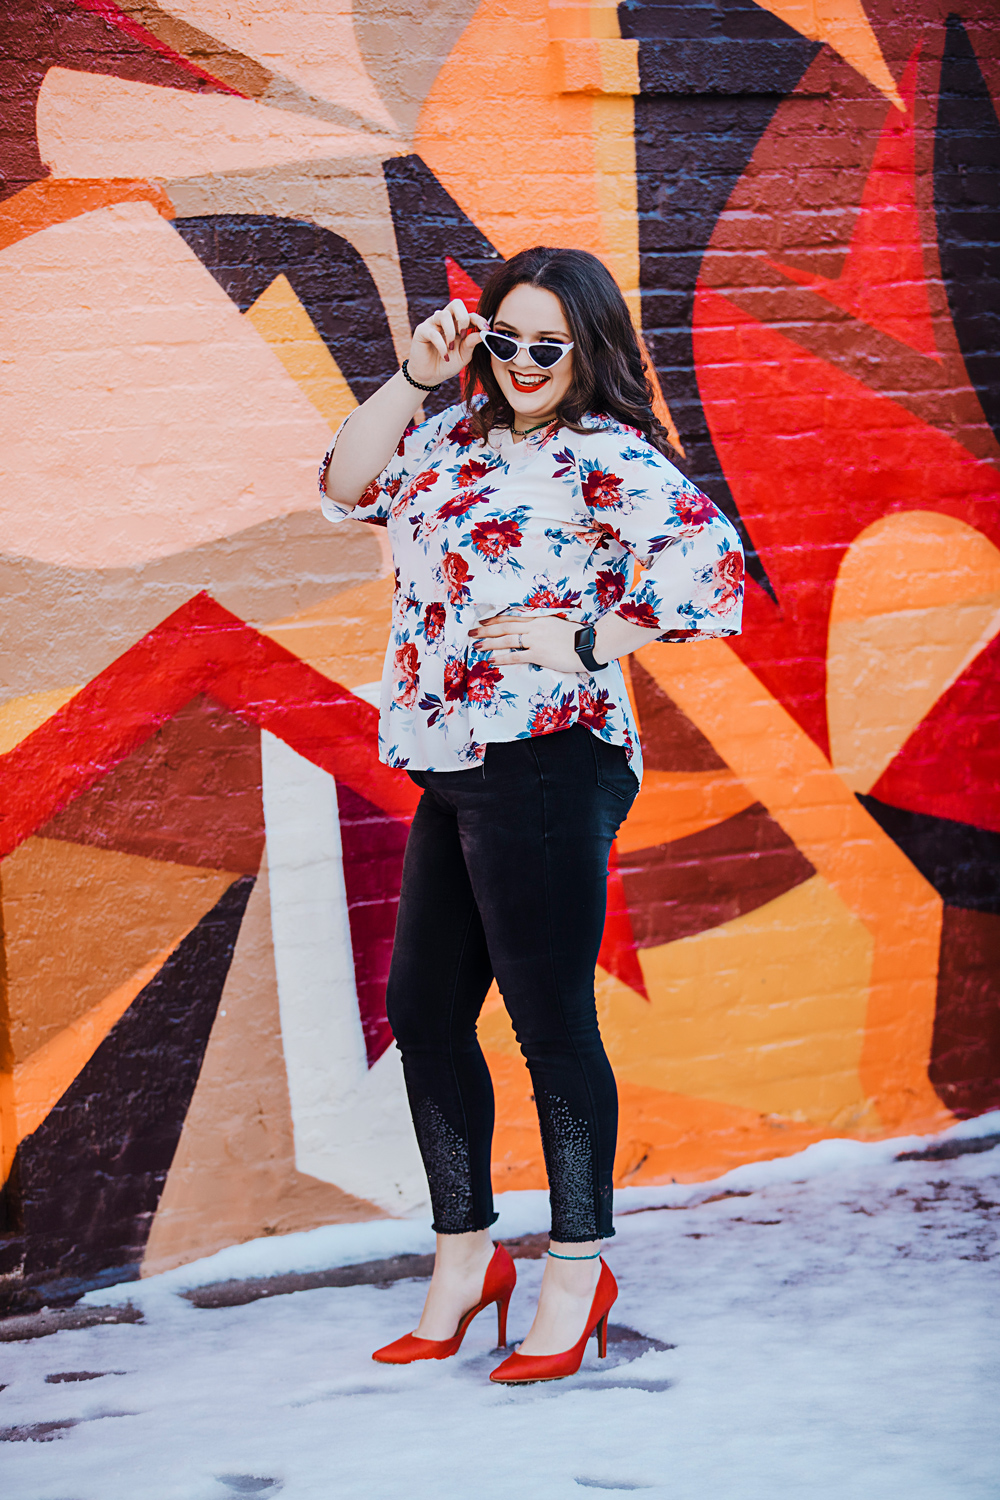 Oklahoma Senior girl wearing black pants, red heels, and a floral shirt standing in snow in front of a graffiti wall in the Plaza District in Oklahoma City.